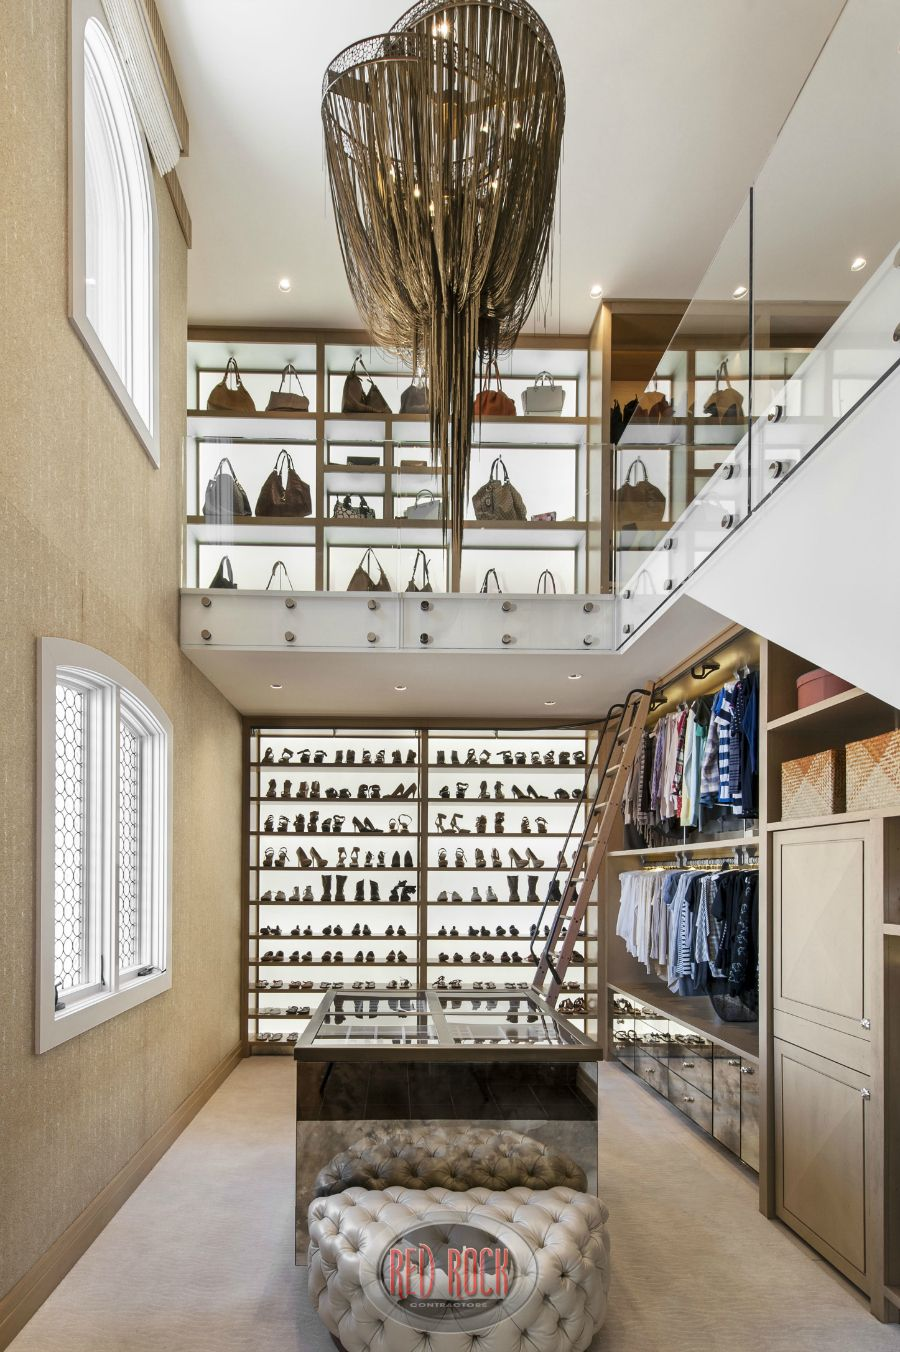 Dressing A Petit Prix 70 awesome walk-in closet ideas (photos) | conceptions de